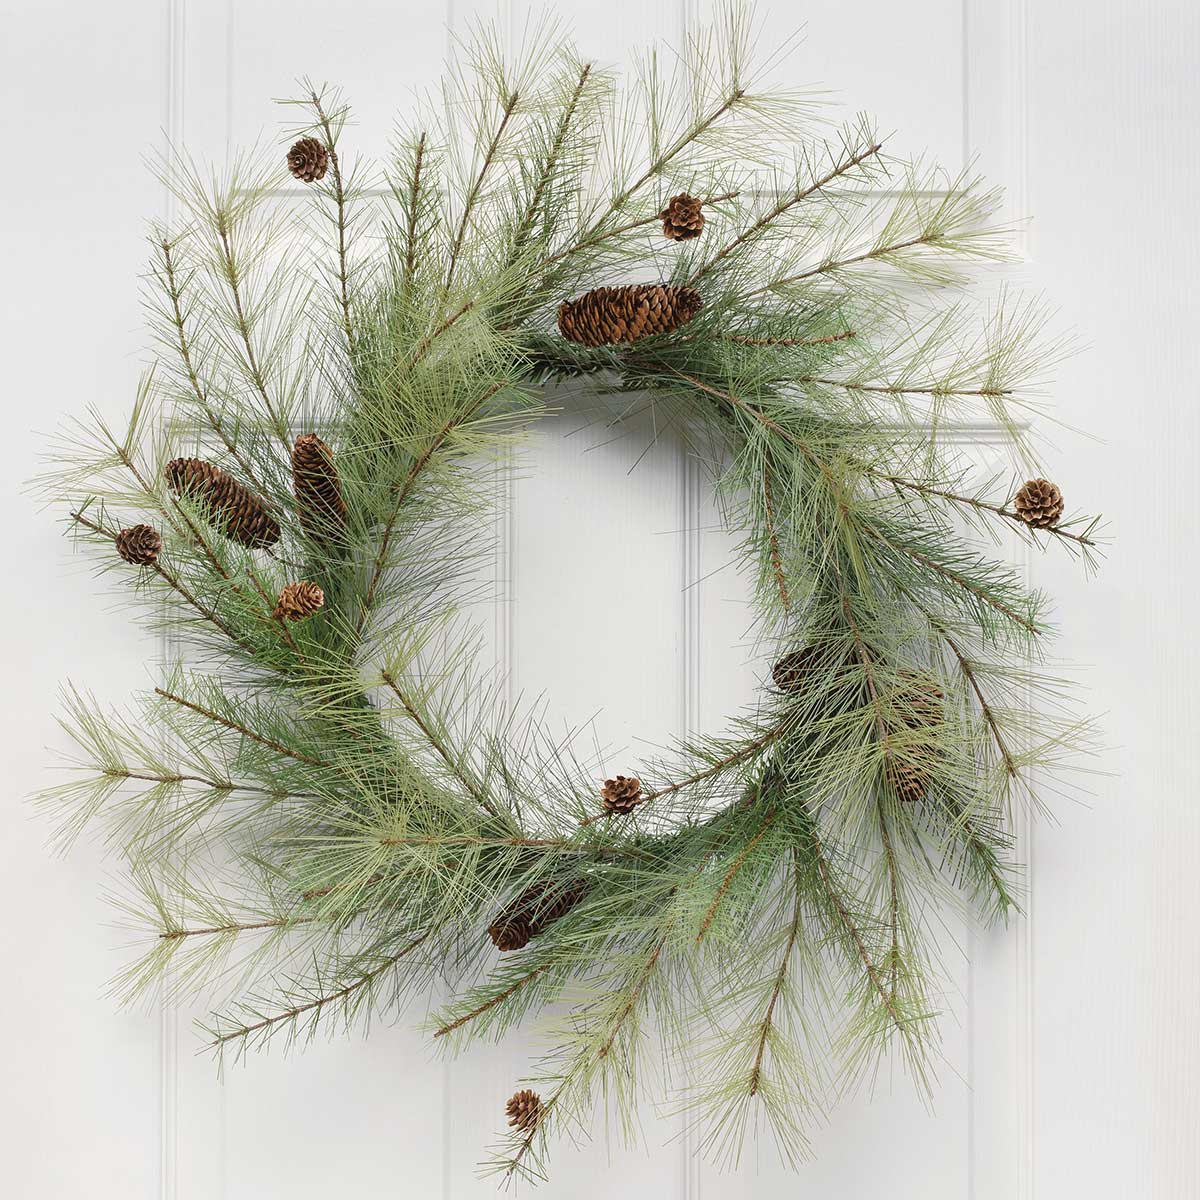 PINE WREATH WITH MINI PINECONES